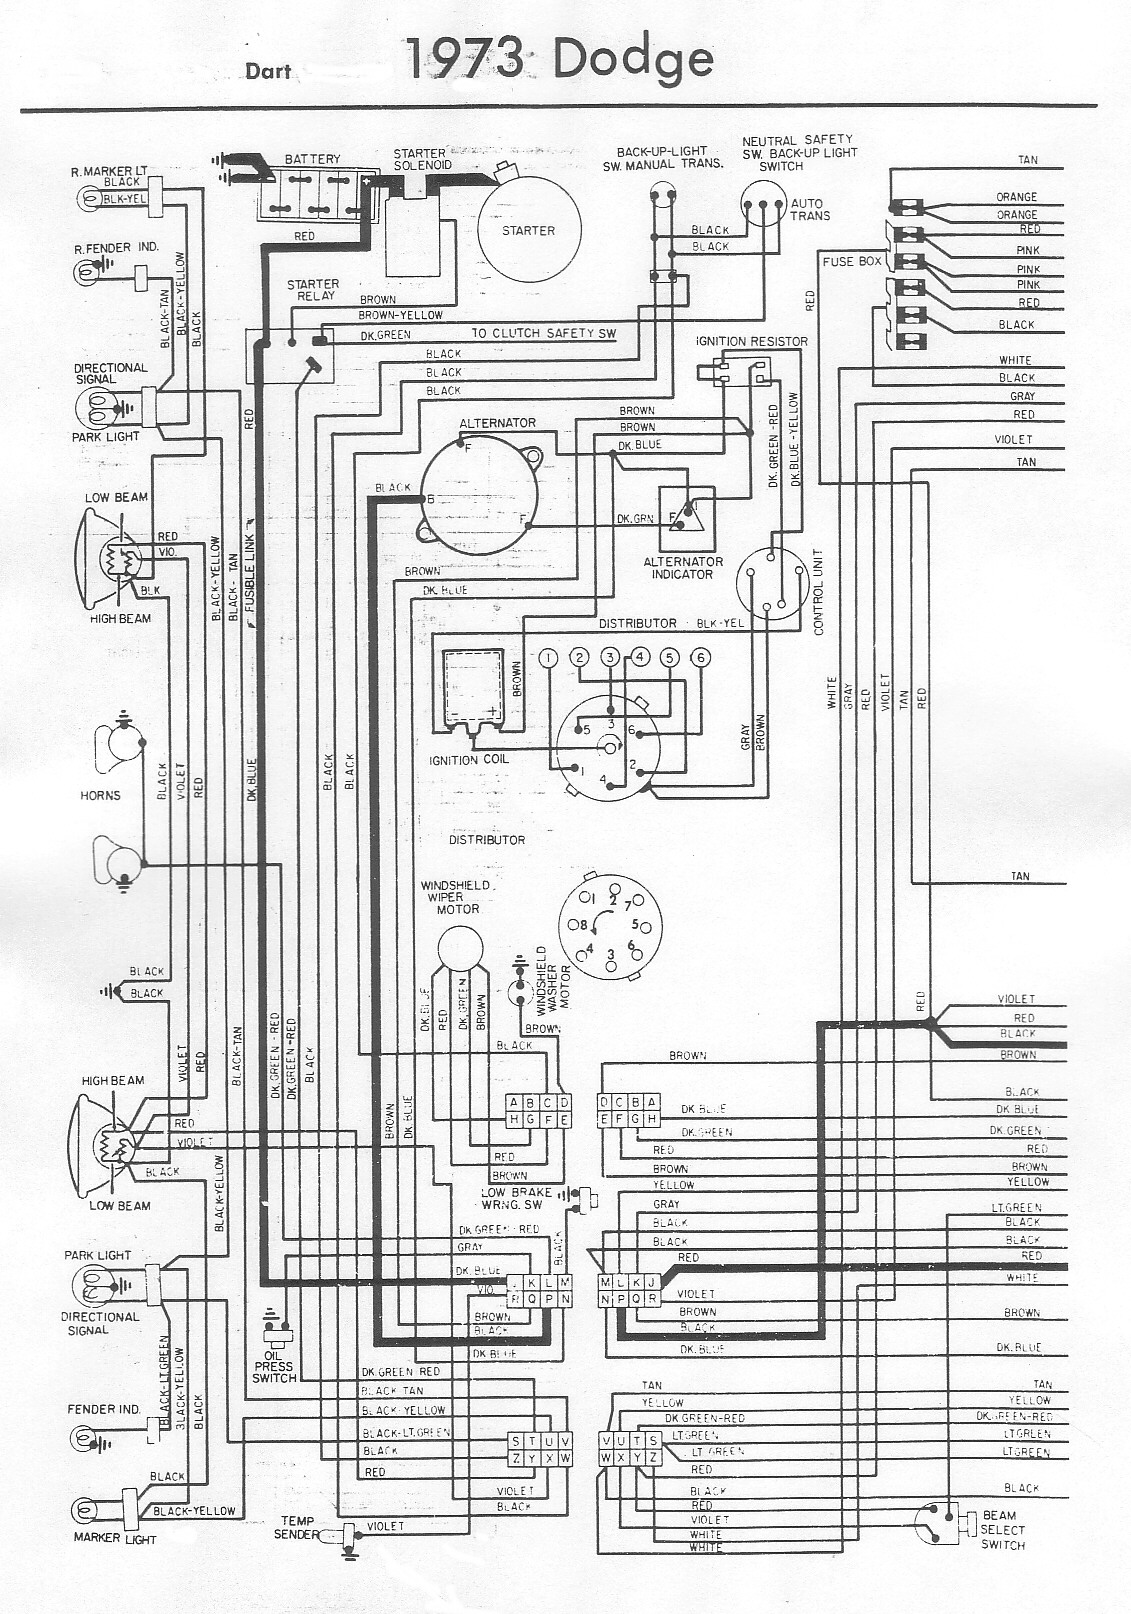 hight resolution of 73 dodge dart wiring diagrams wiring diagrams schema 2002 dodge truck alternator wiring schematic 1970 dodge challenger alternator wiring